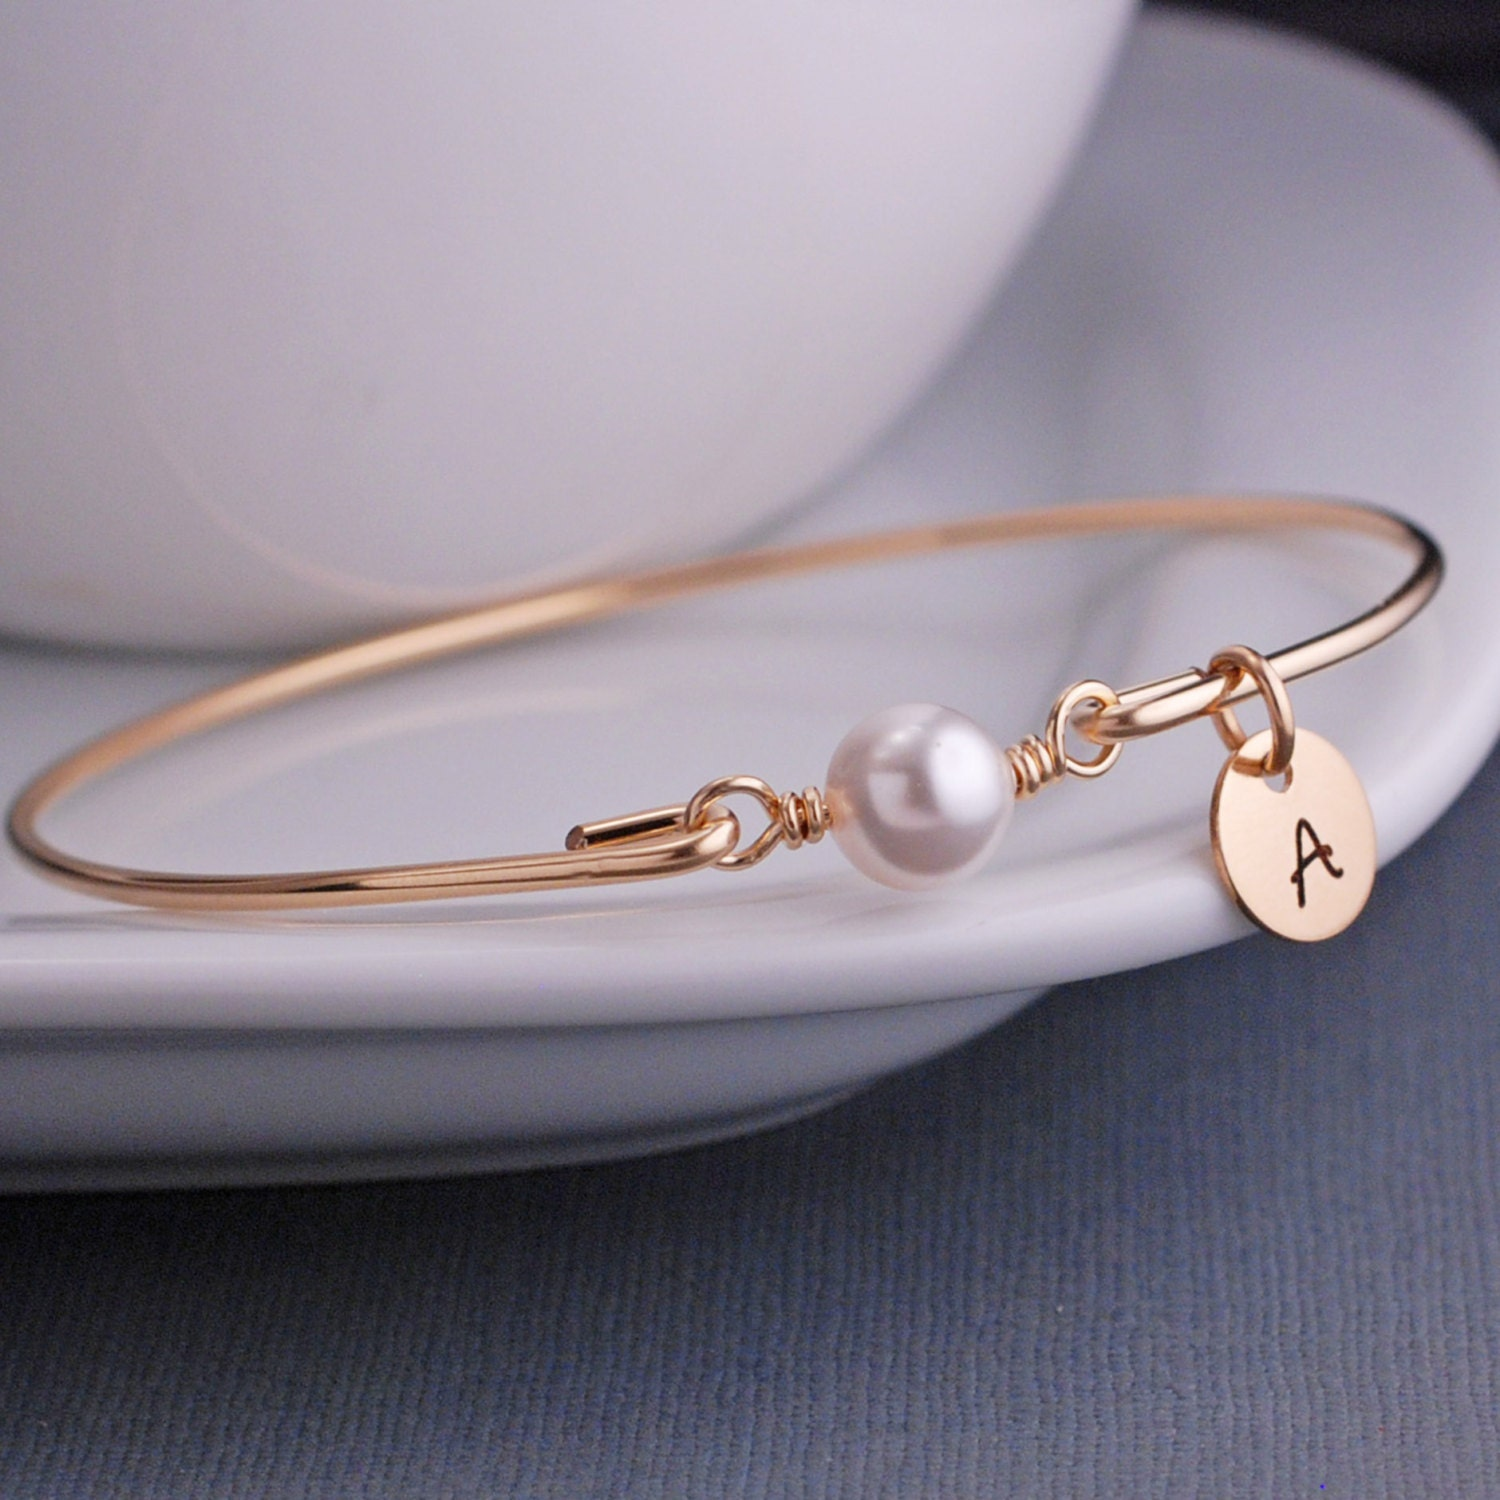 Engraved pearl bracelet with name charm